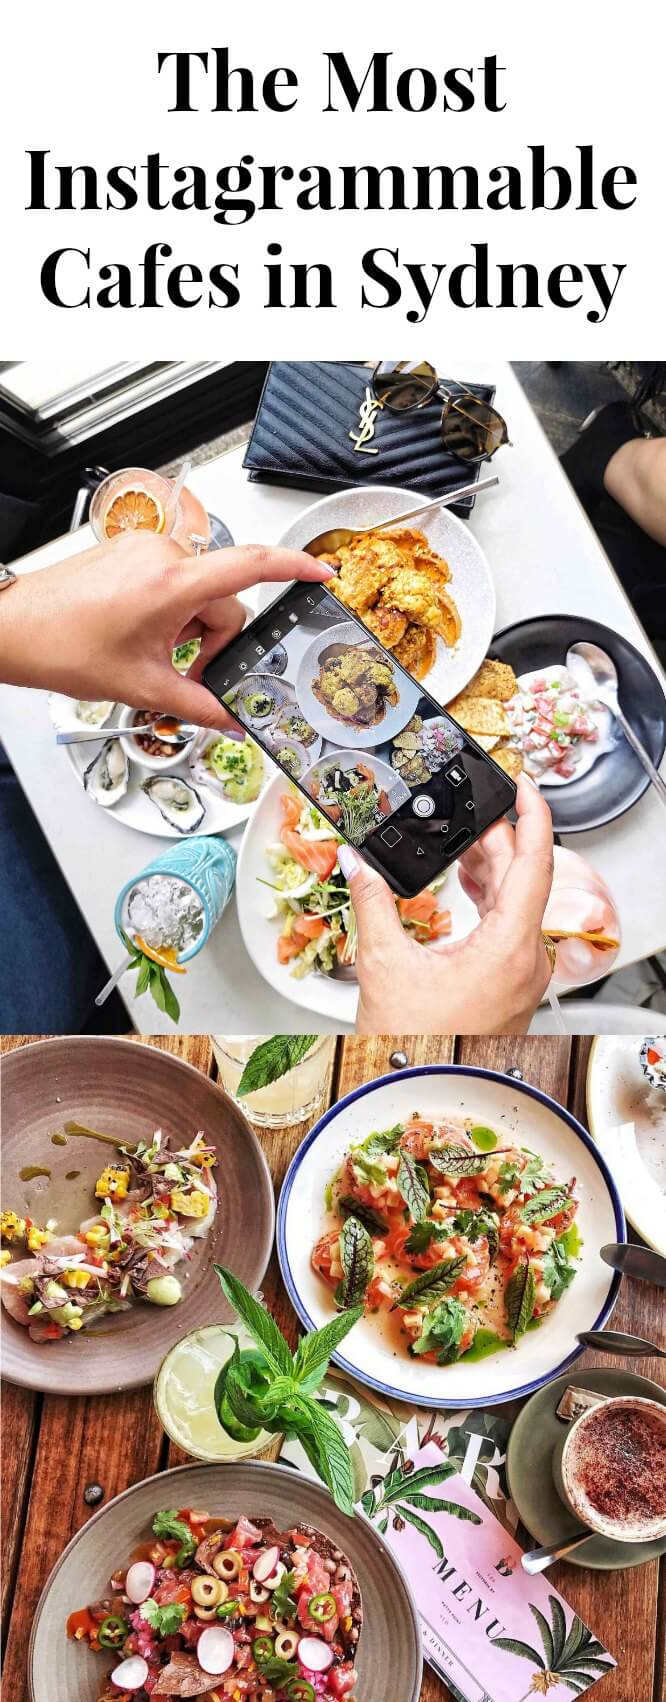 The Most Instagrammable Cafes in Sydney